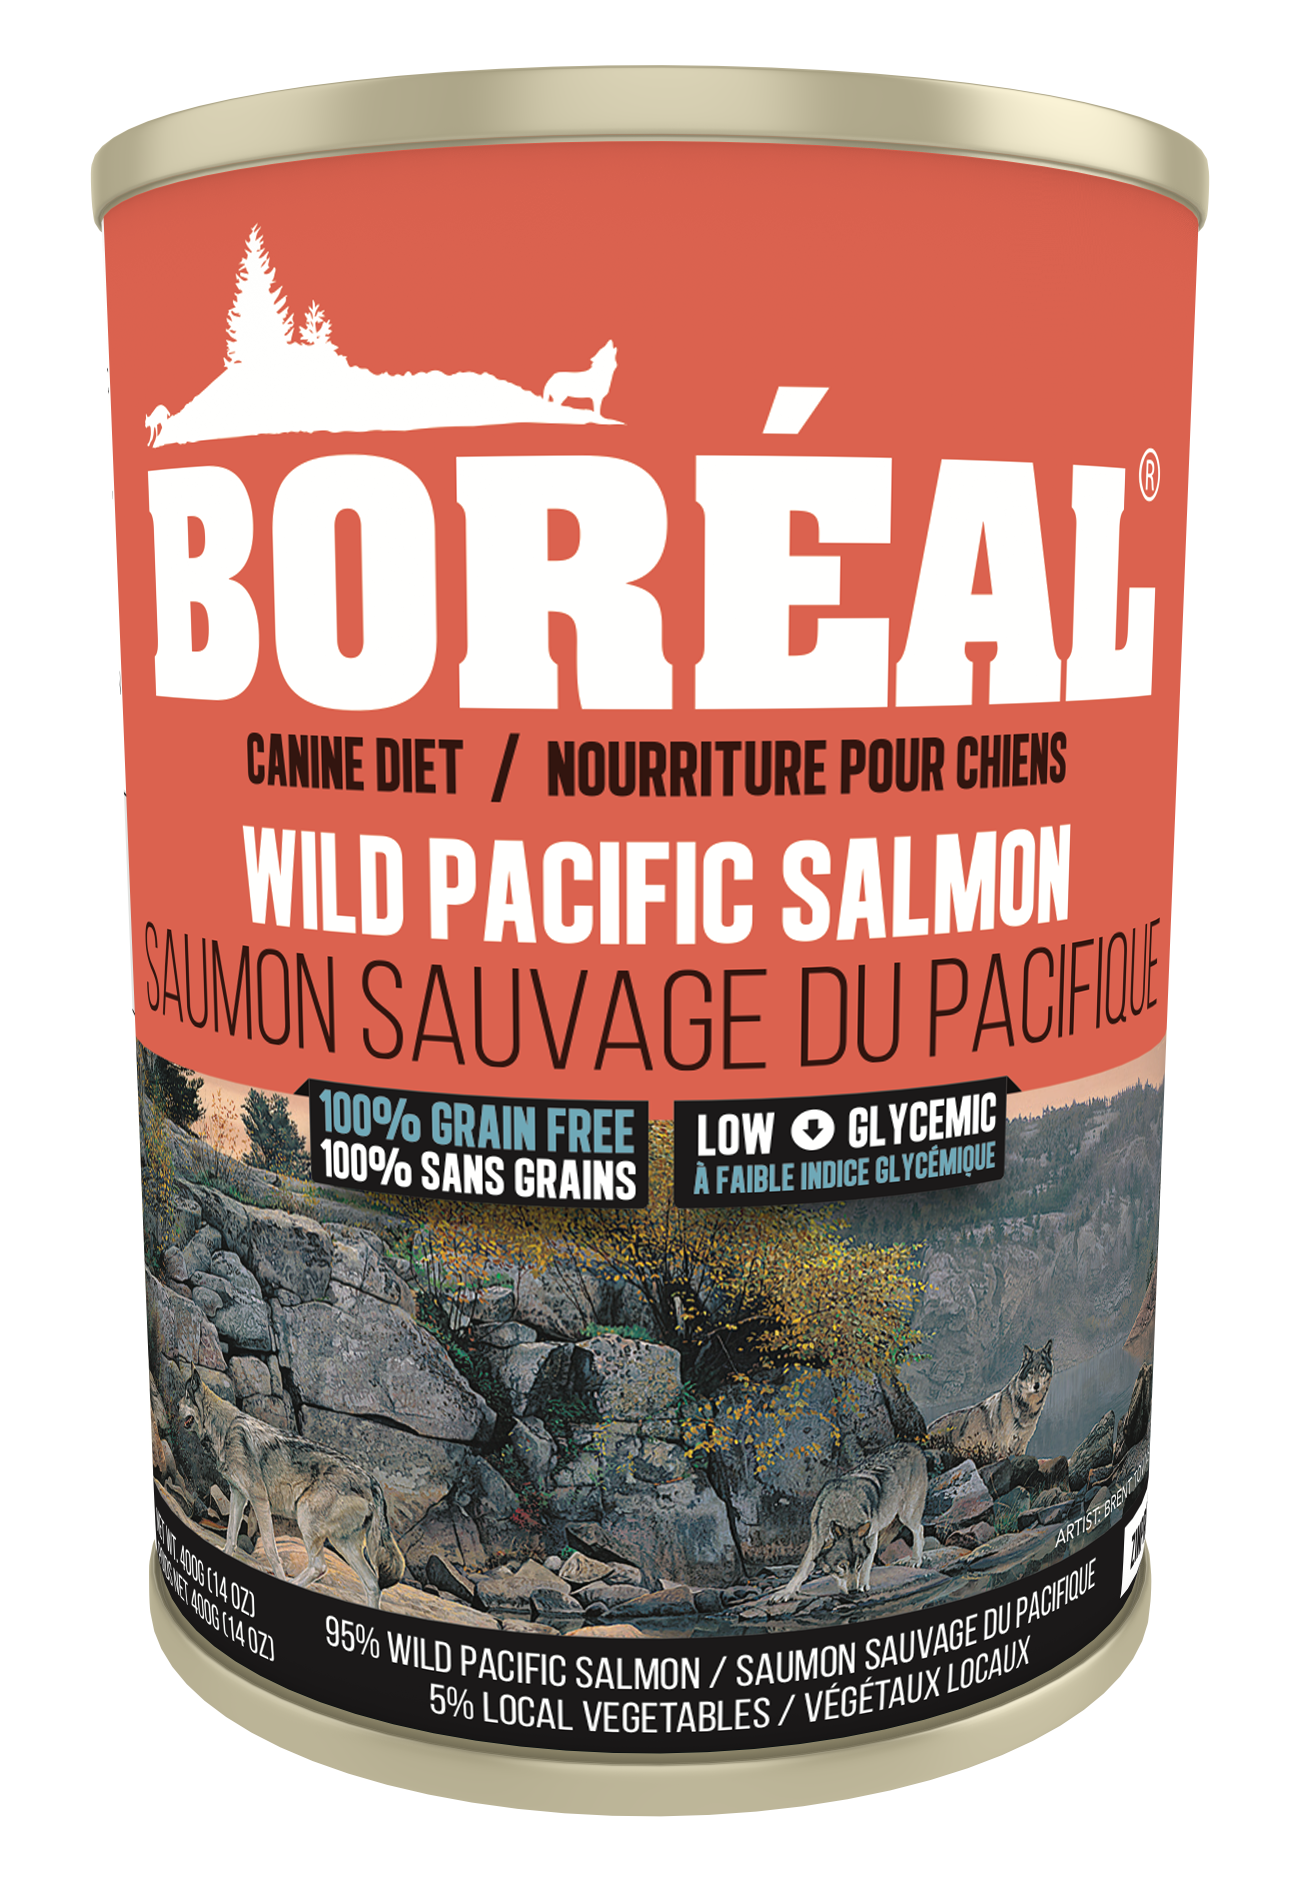 Big Bear Wild Pacific Salmon 690g